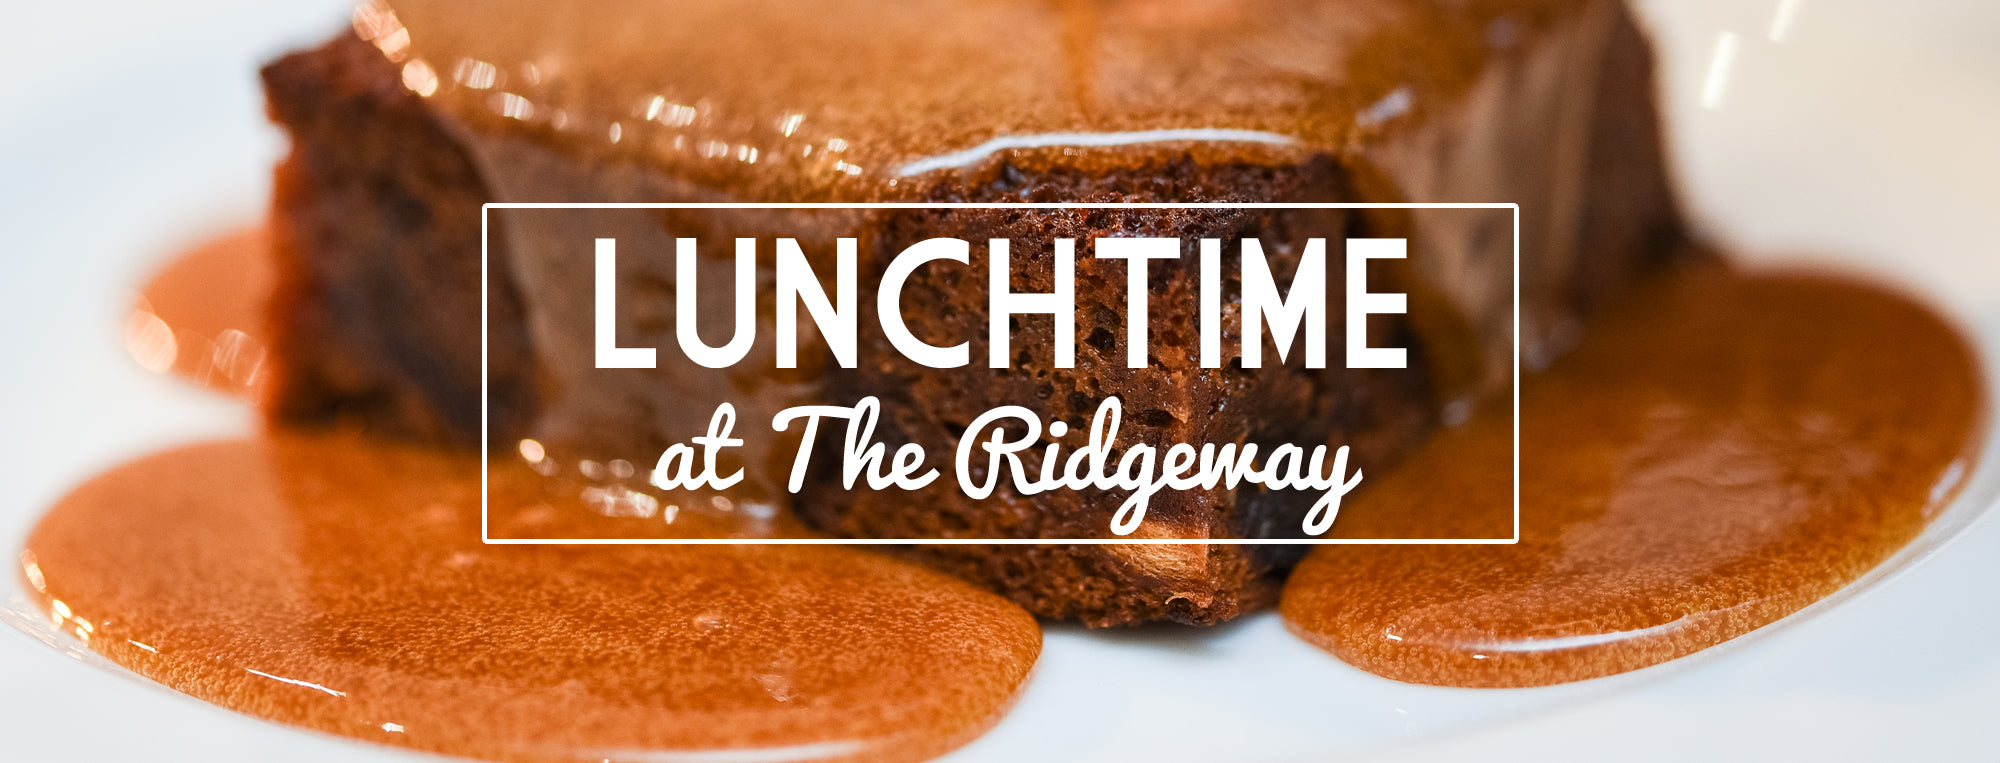 Lunchtime at The Ridgeway Bar and Kitchen in Newport. Set Menu, Grill Menu and Sandwiches